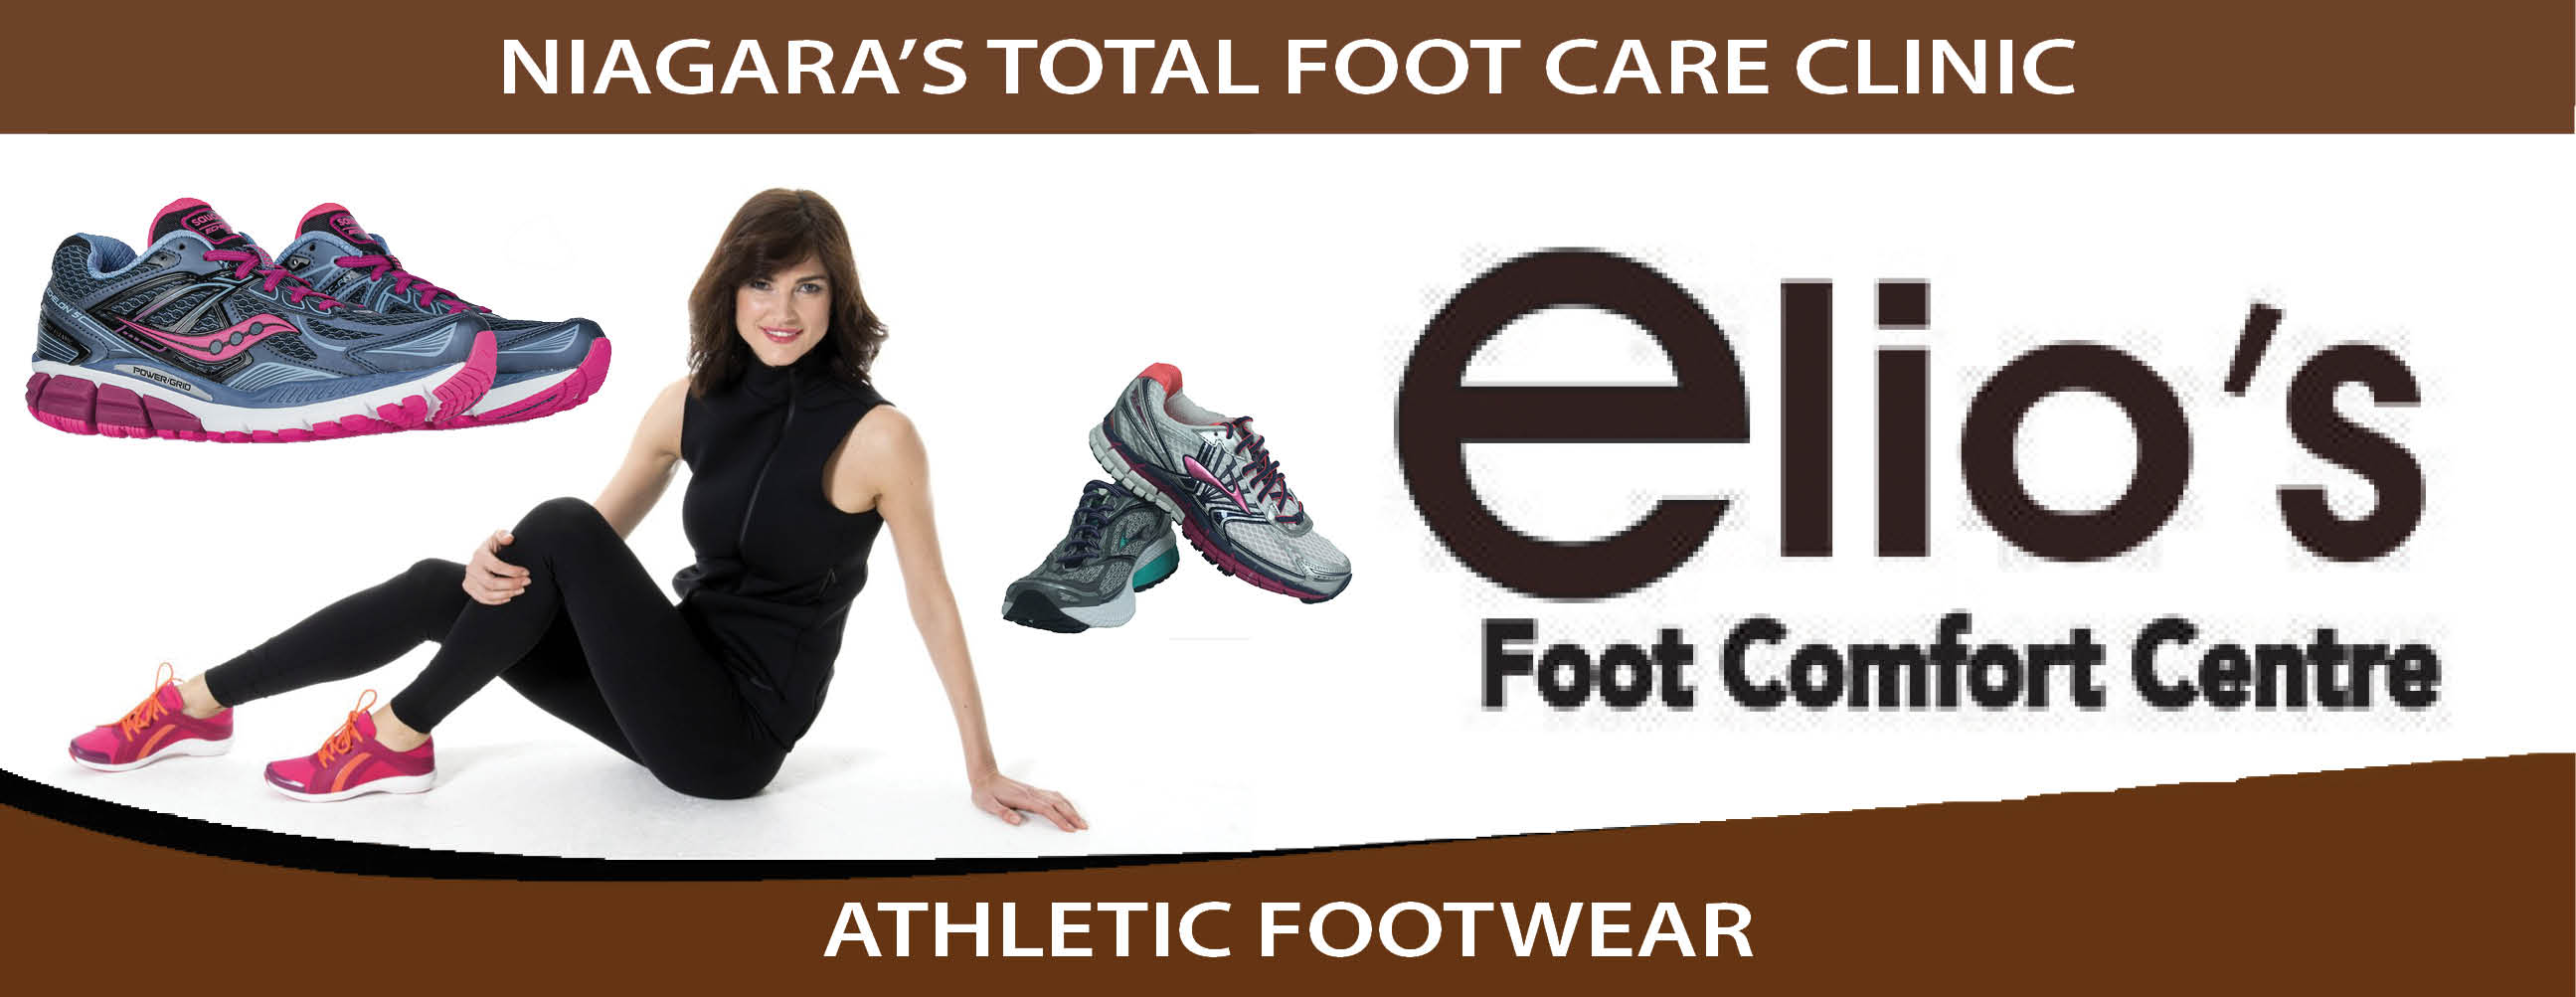 Athletic Shoes - Elio's Foot Comfort